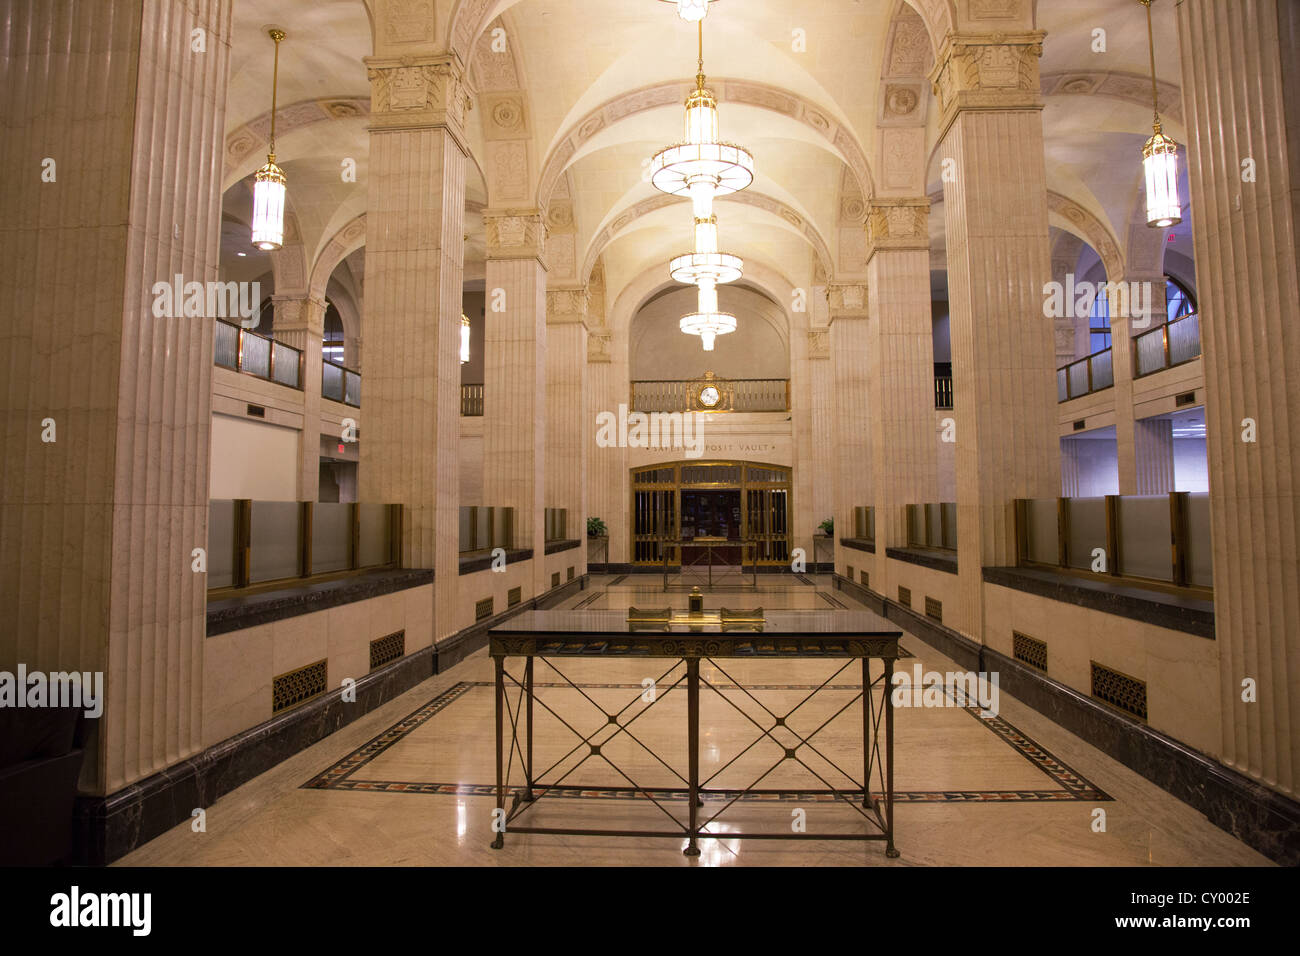 Art Deco Bank.Vintage Art Deco Bank Interior Stock Photo 51016518 Alamy